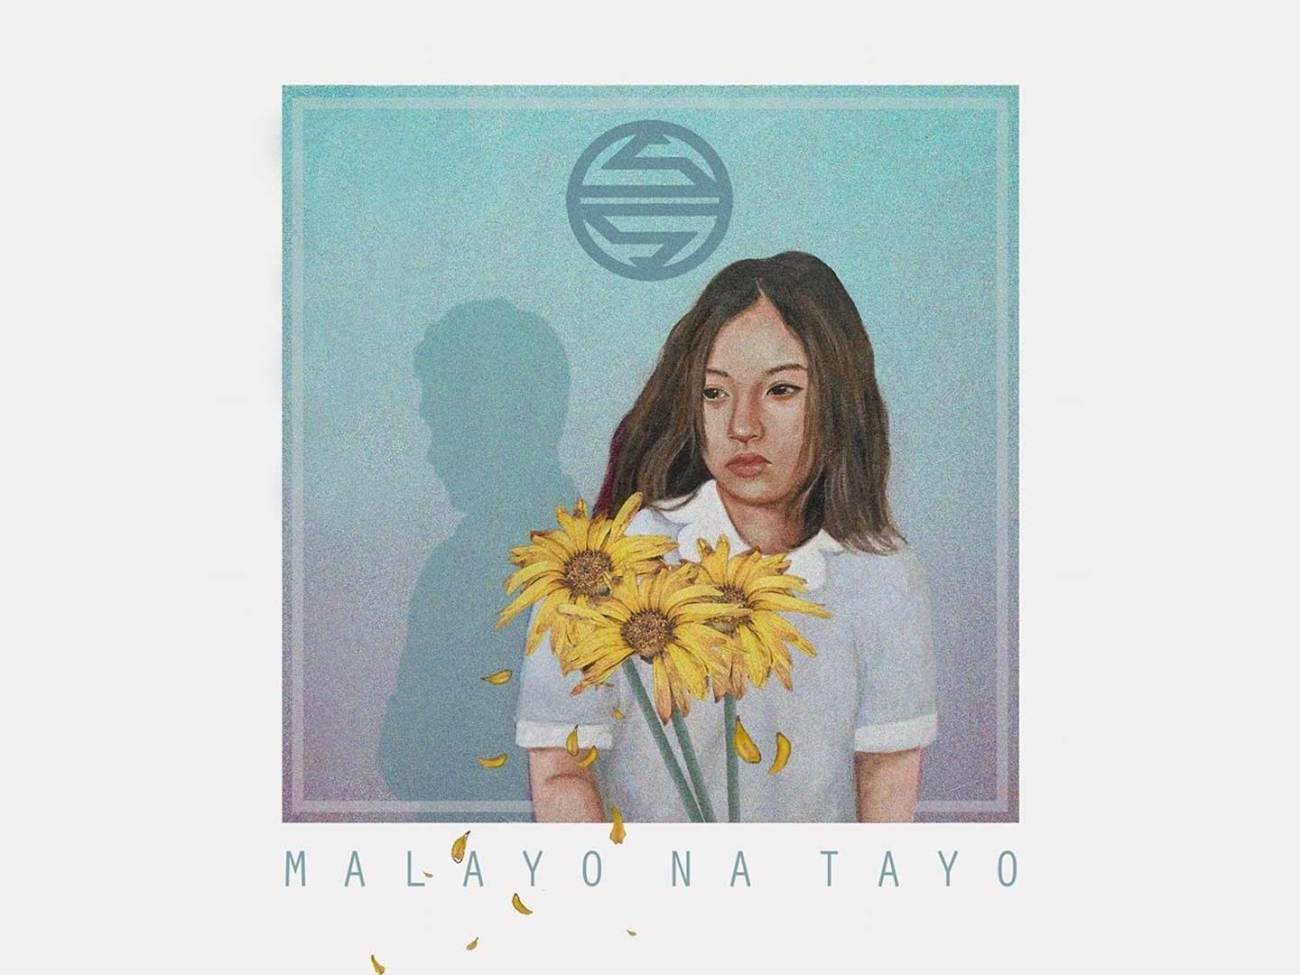 Silent Sanctuary's Malayo na Tayo Song Cover by Aiya Naira